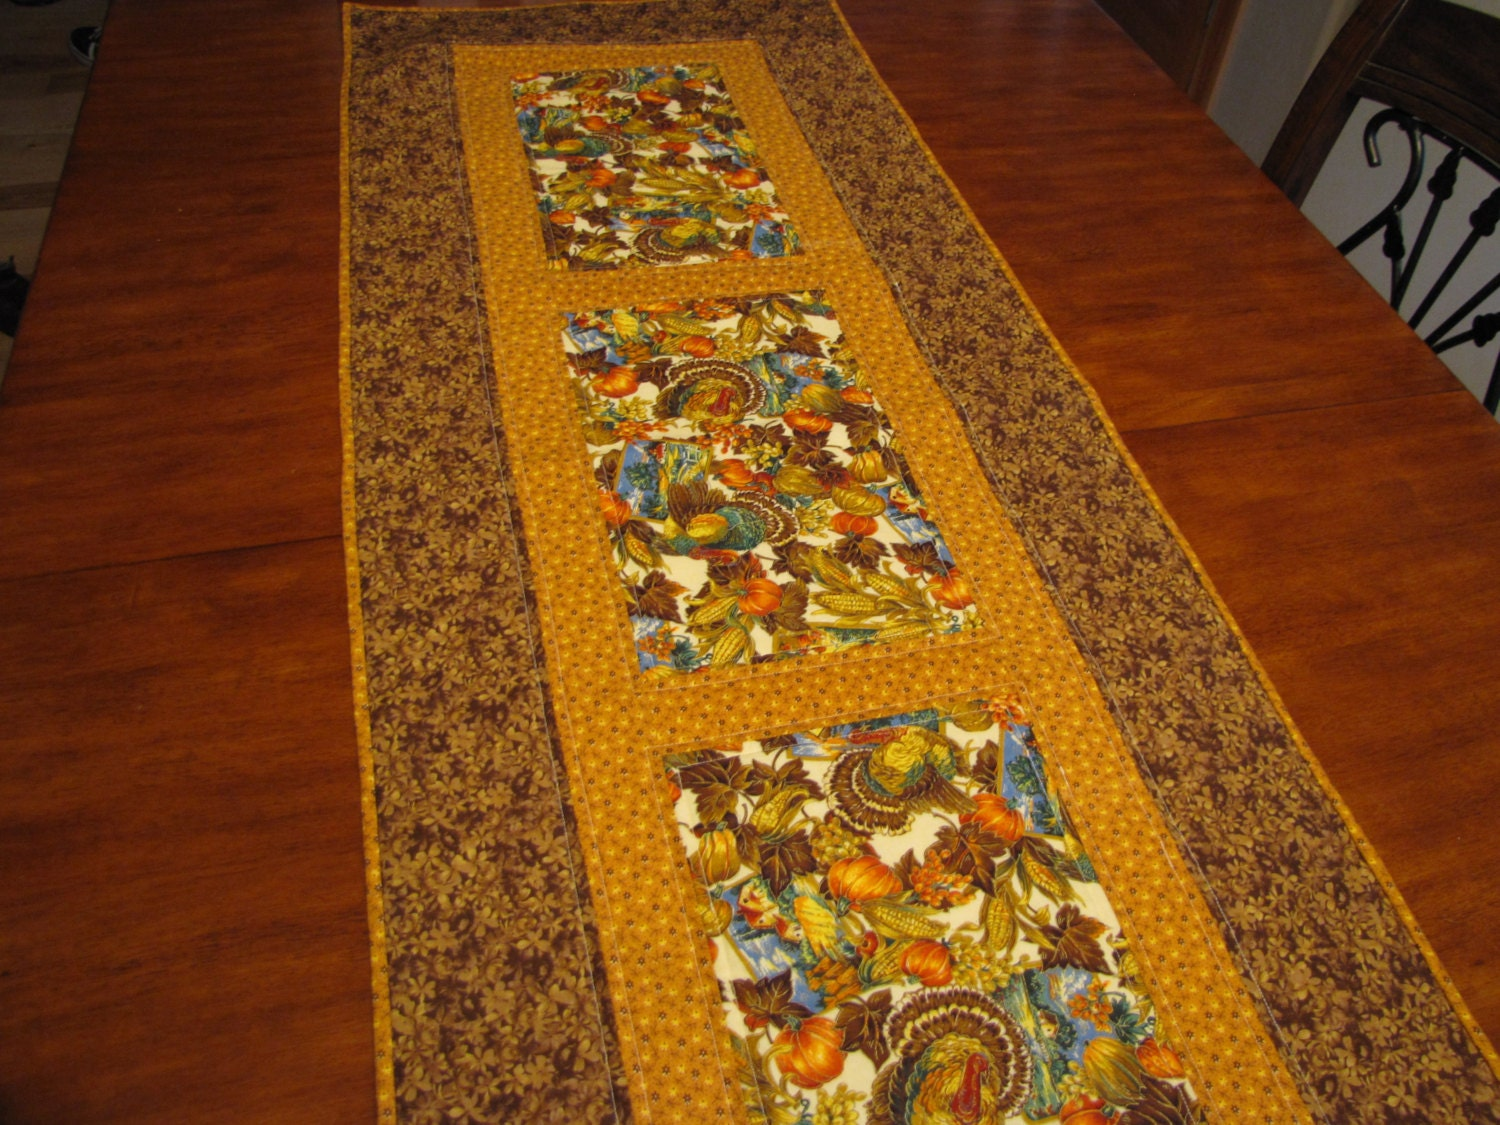 Thanksgiving Quilted Table Runner Patterns : Quilted Thanksgiving table runner